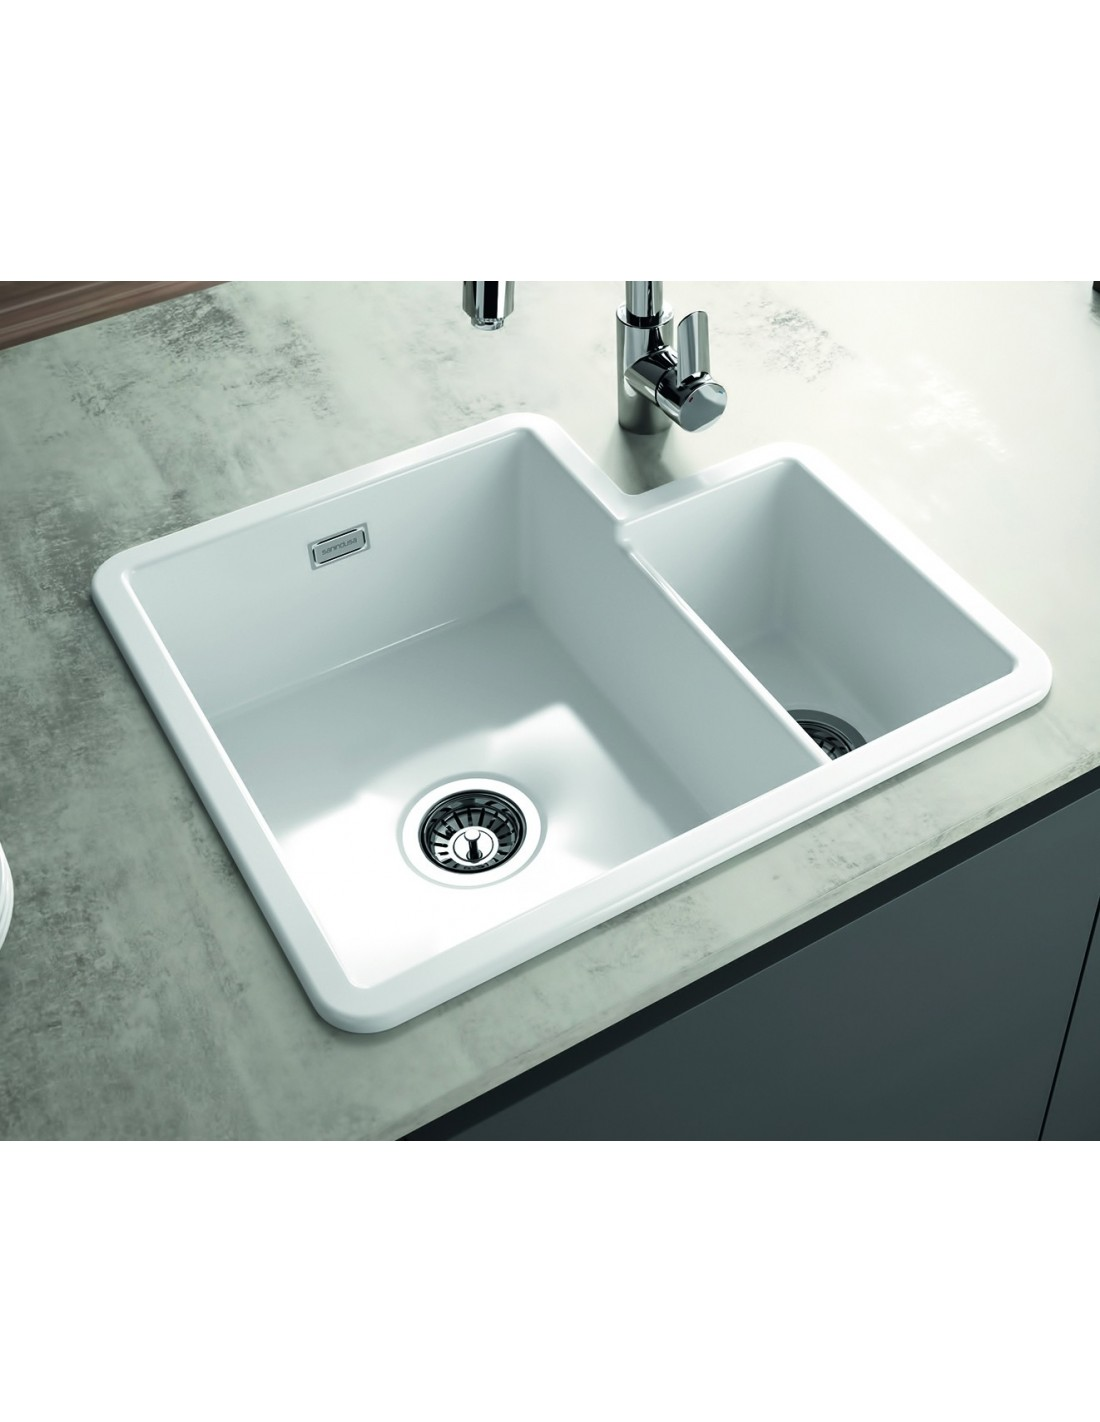 Inset or topmount fitted kitchen sinks 1 5 bowl kitchen